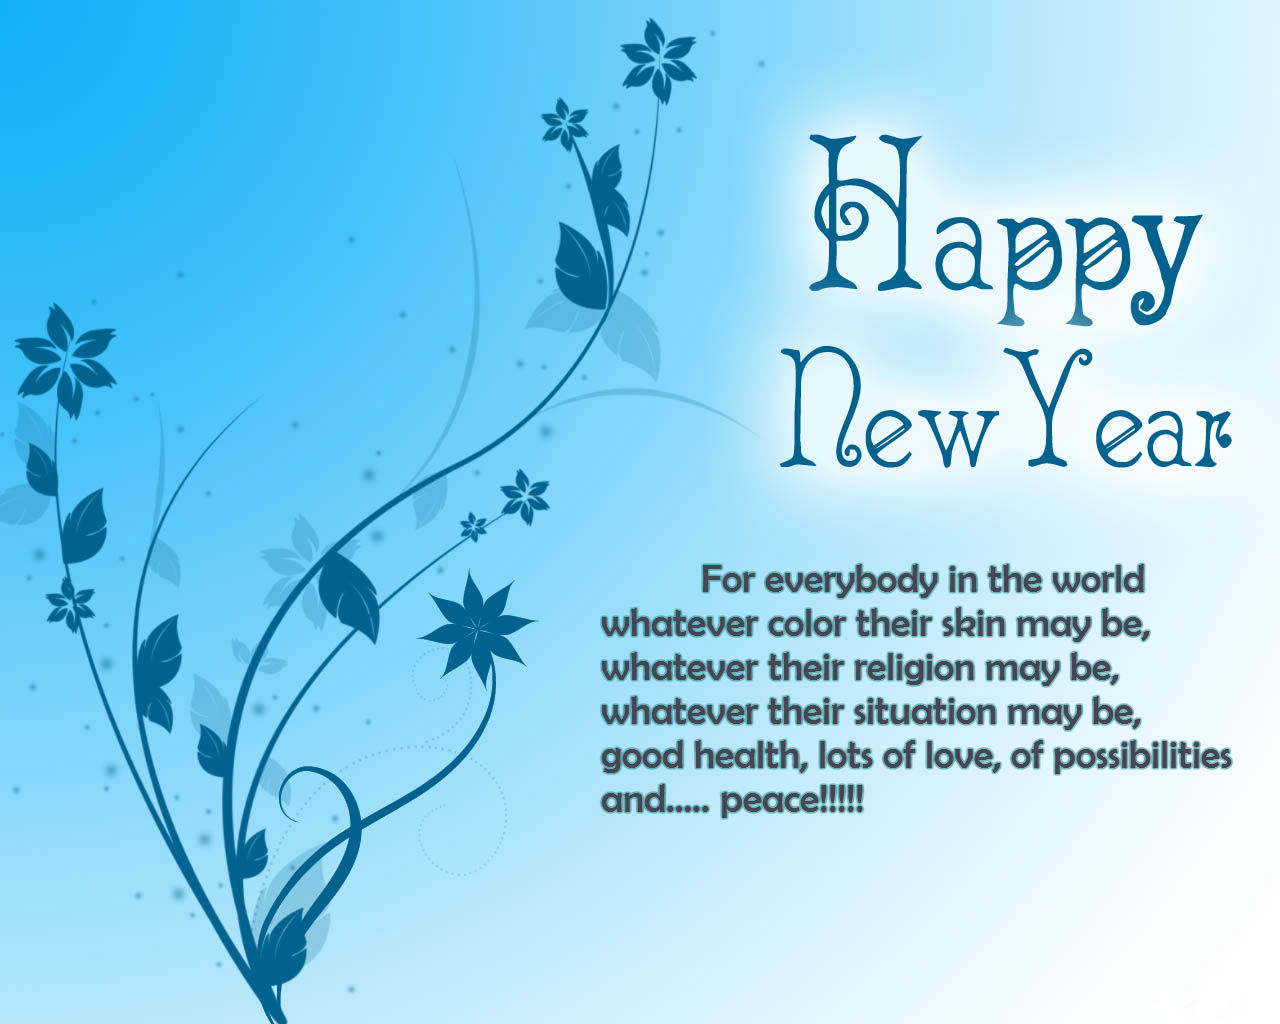 2013 New Year Wishes Wallpapers And Sms. 1280 x 1024.Happy New Year Images Advance